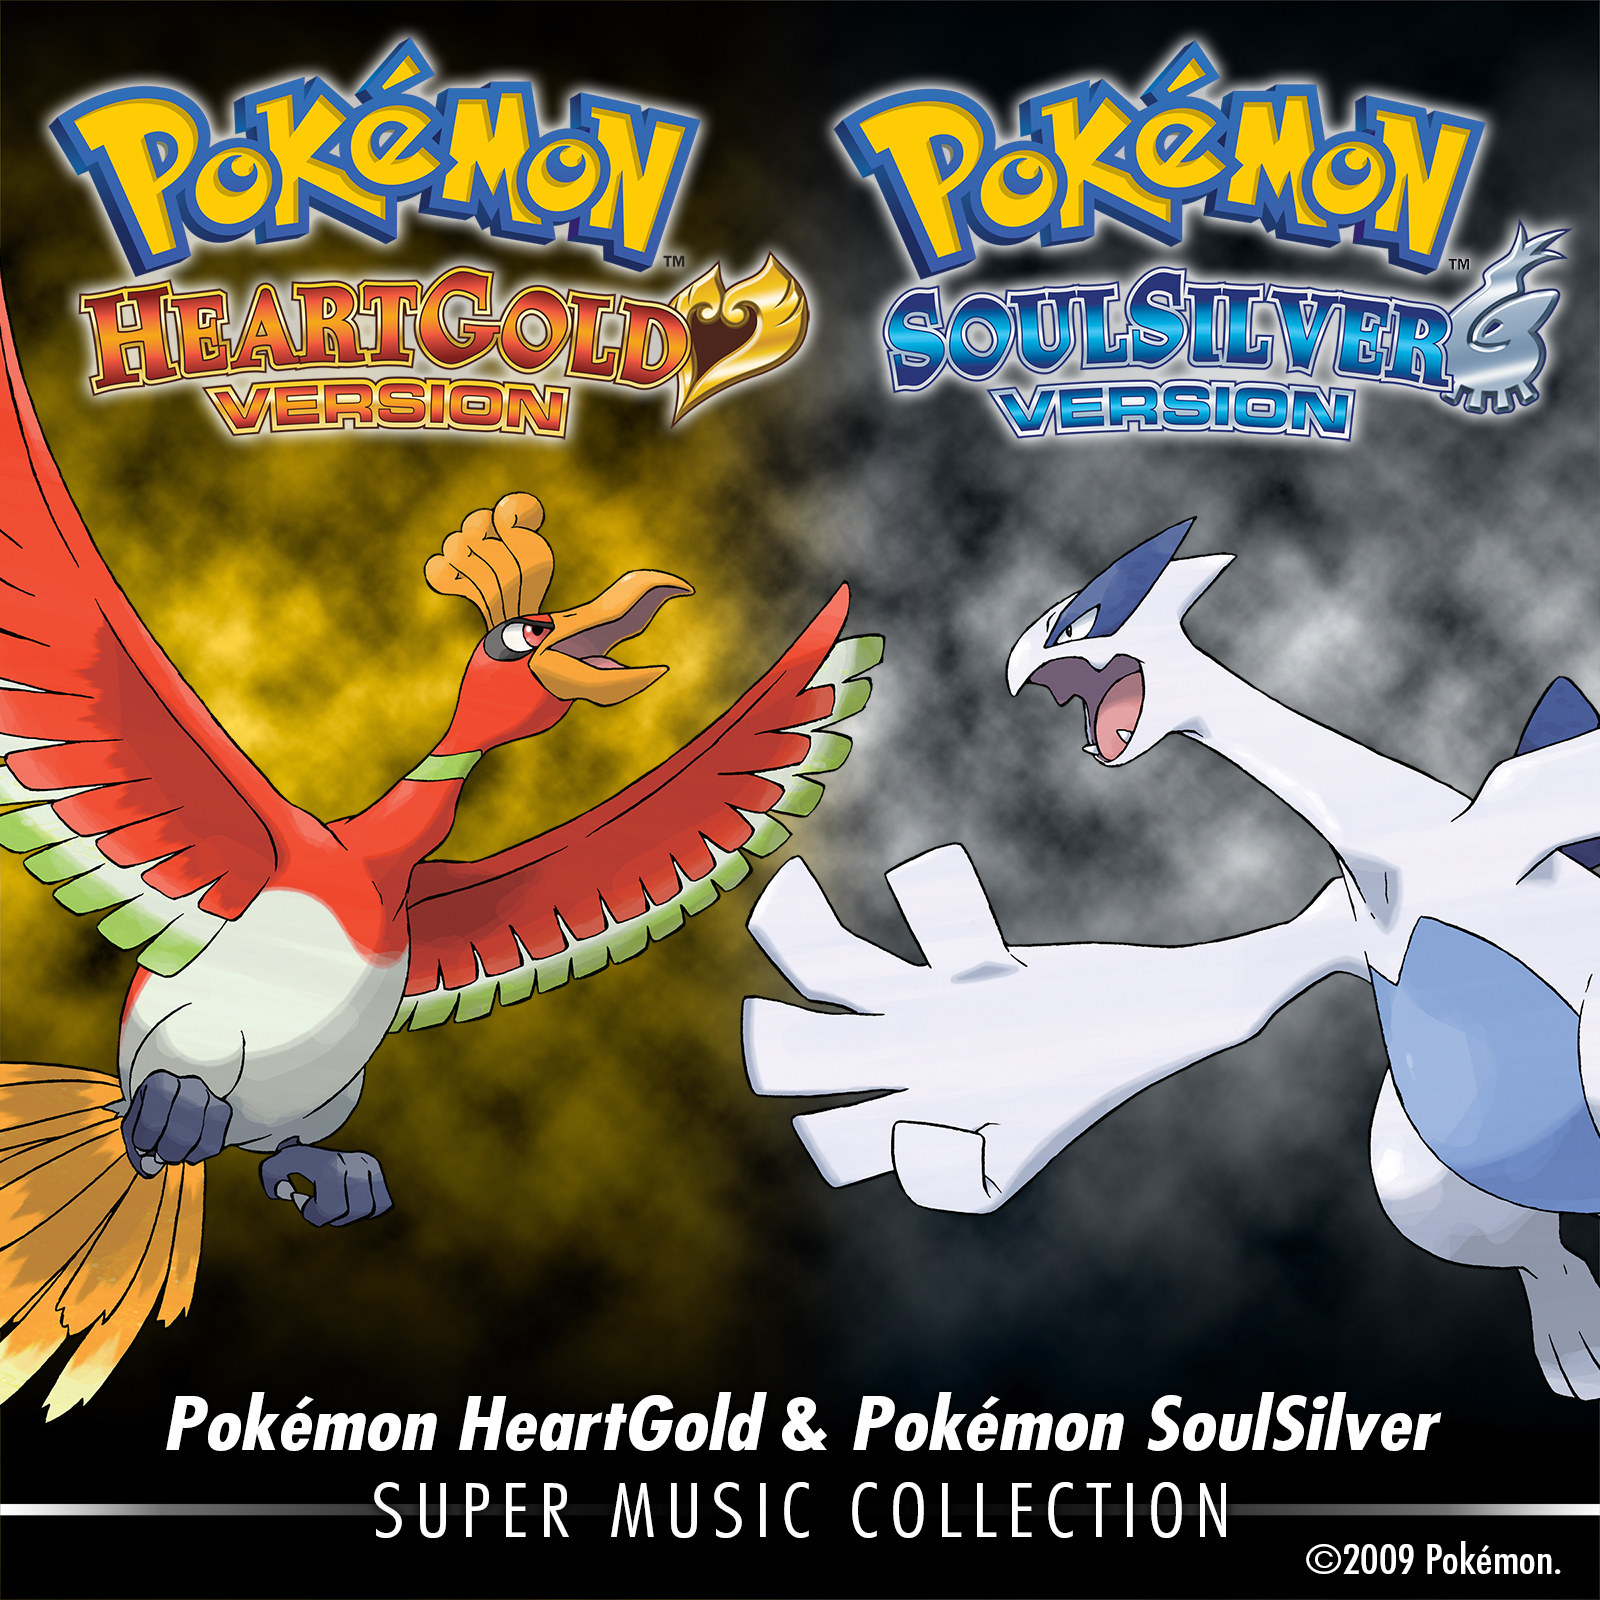 soundtrack_pokemon_oro_heartgold_argento_soulsilver_pokemontimes-it